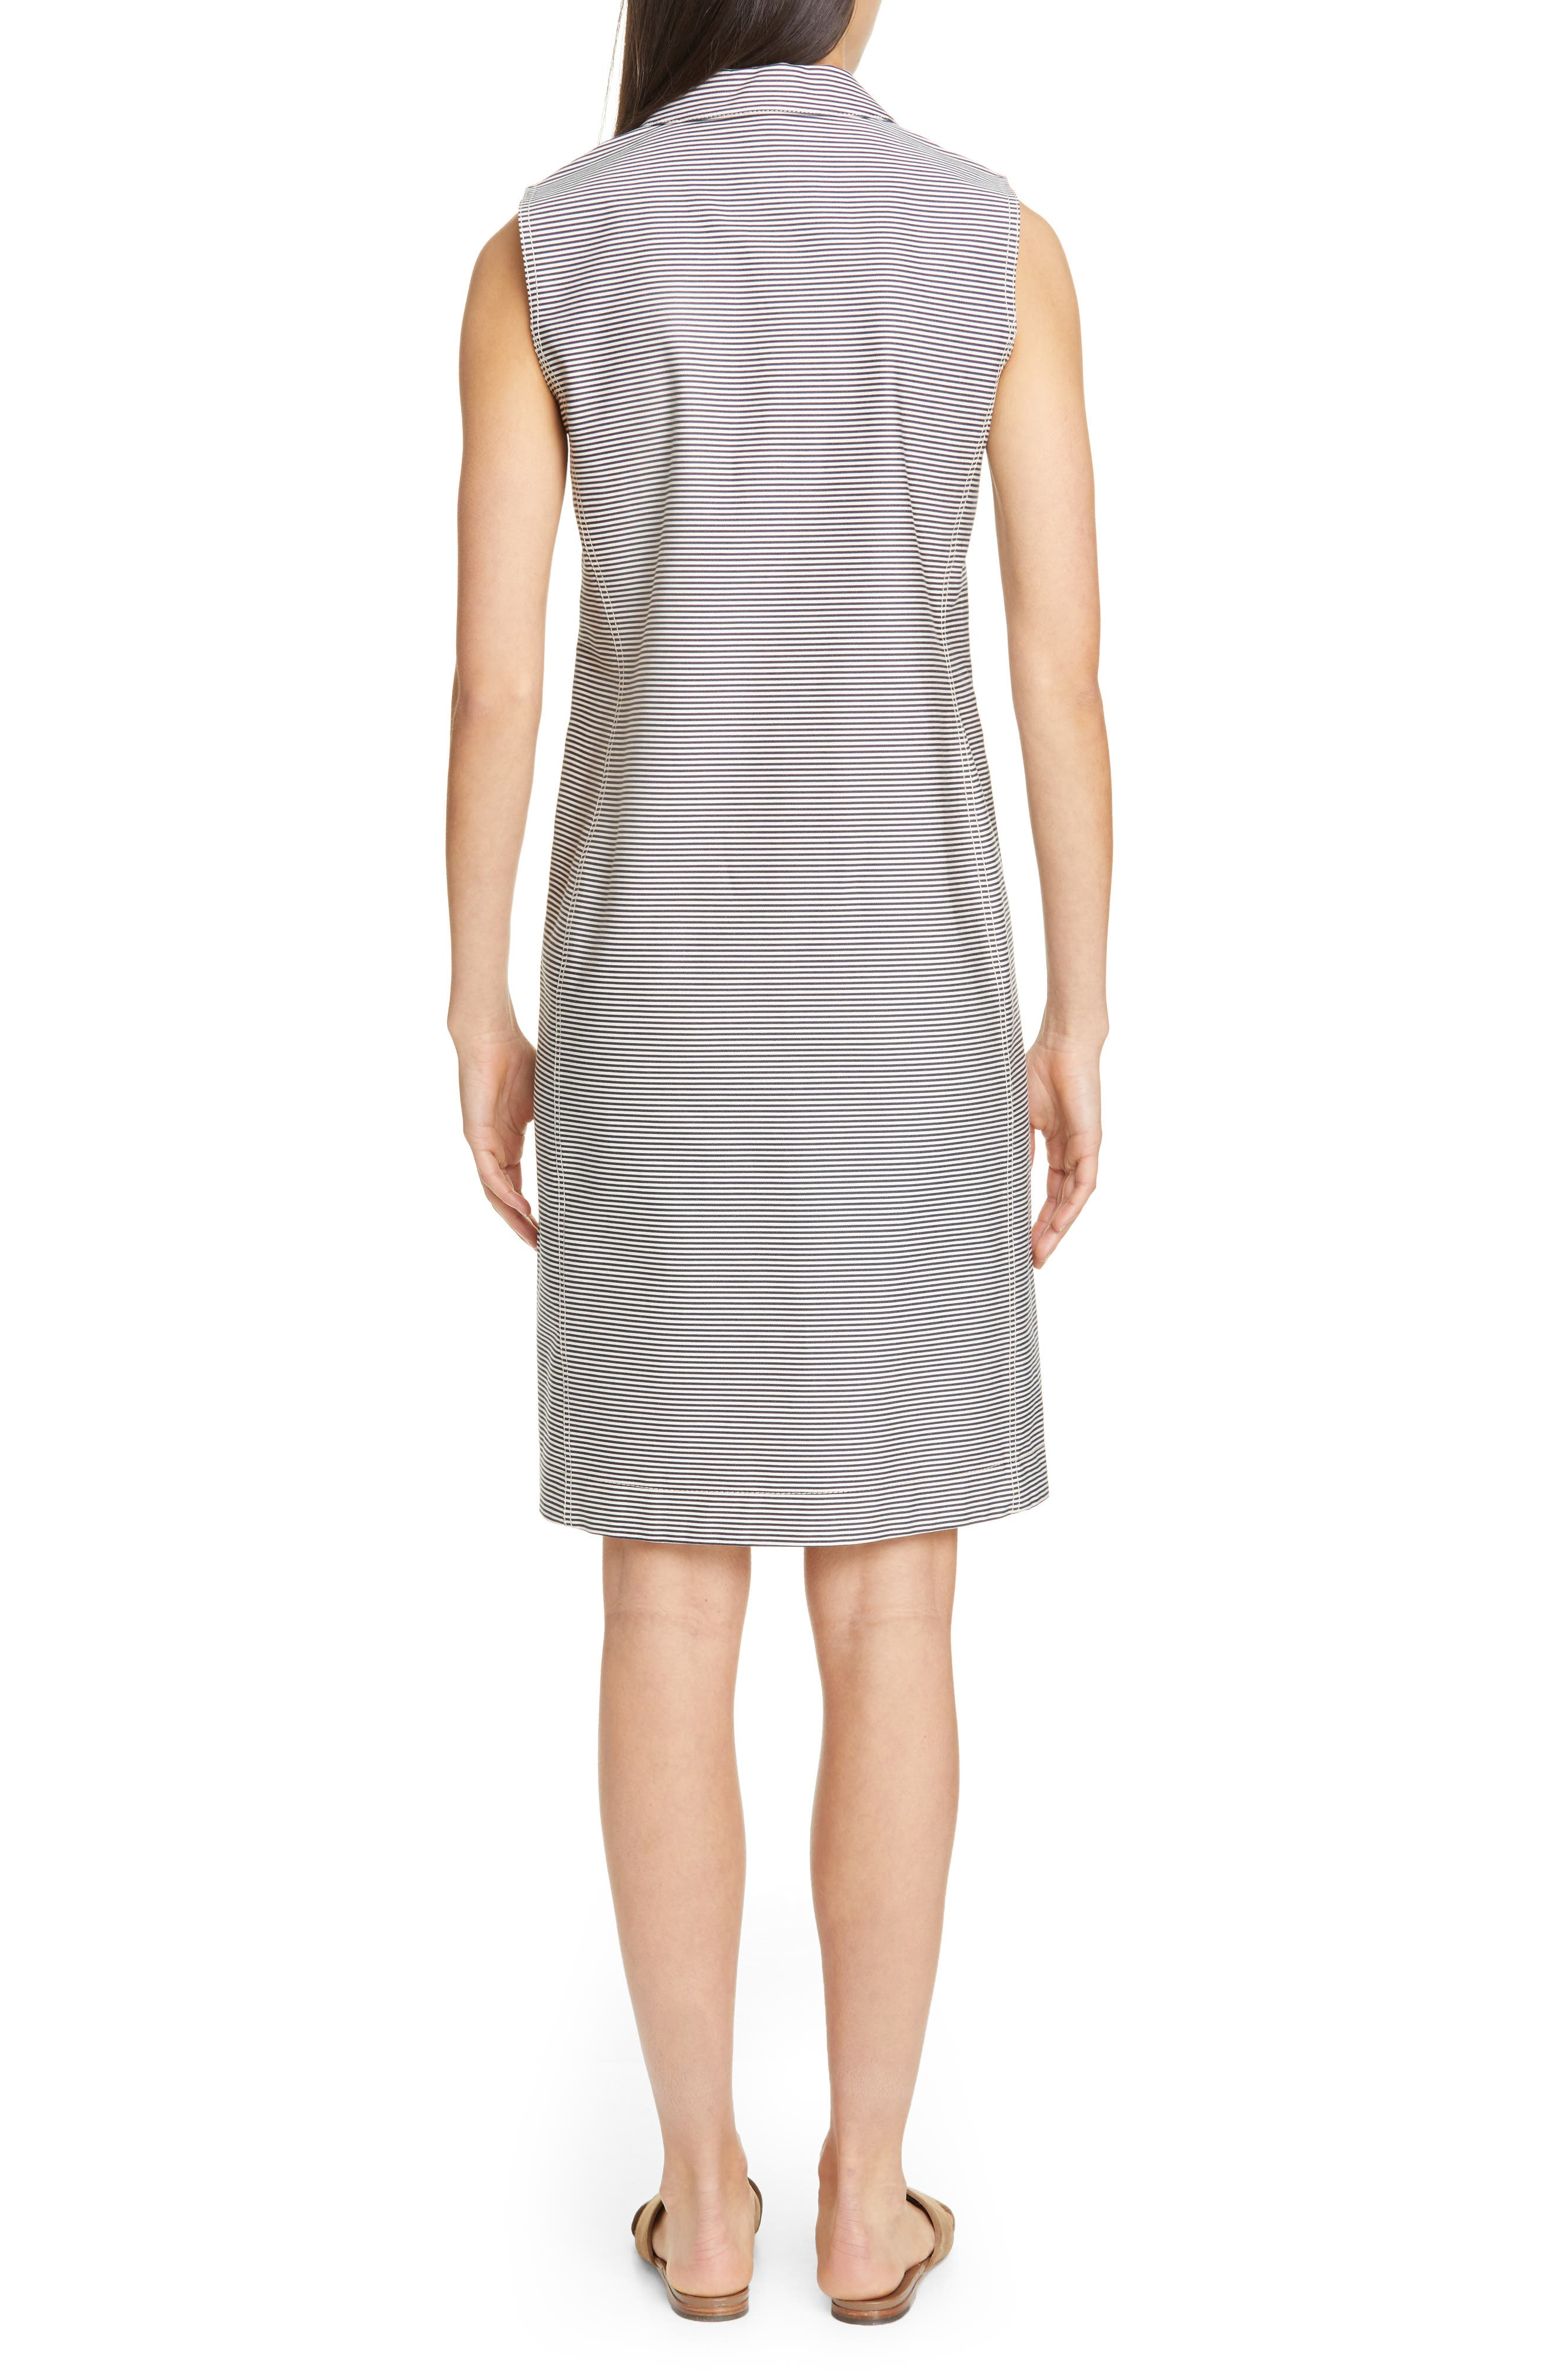 LAFAYETTE 148 NEW YORK, Rudy Stripe Shift Dress, Alternate thumbnail 2, color, INK MULTI